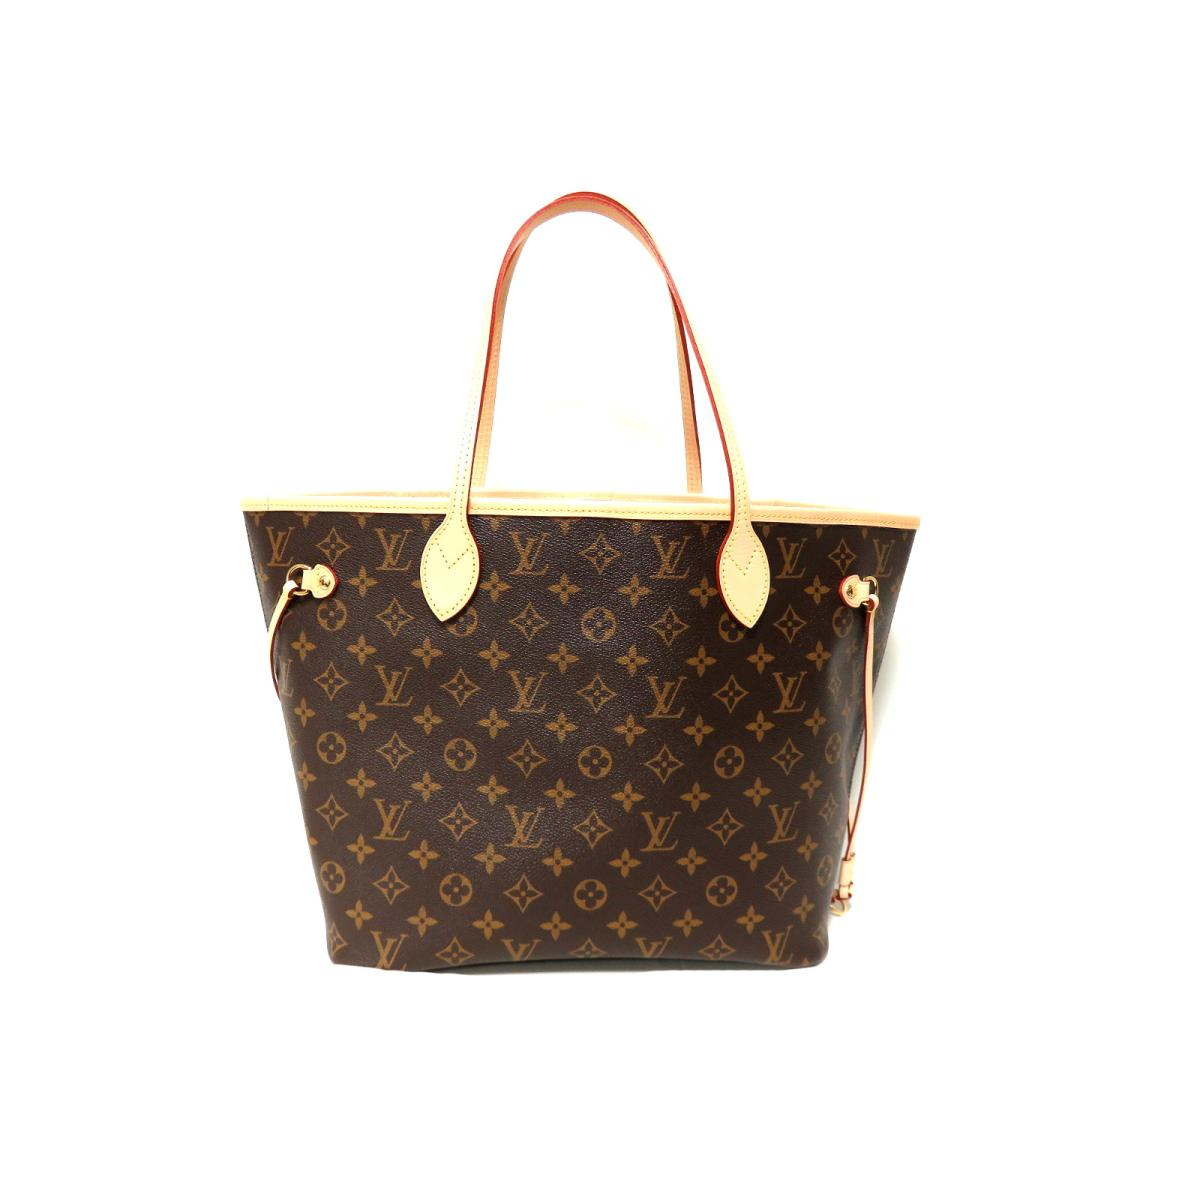 676f84b552df BRANDOFF  Authentic LOUIS VUITTON Neverfull MM Shoulder tote Bag M41177  Monogram canvas